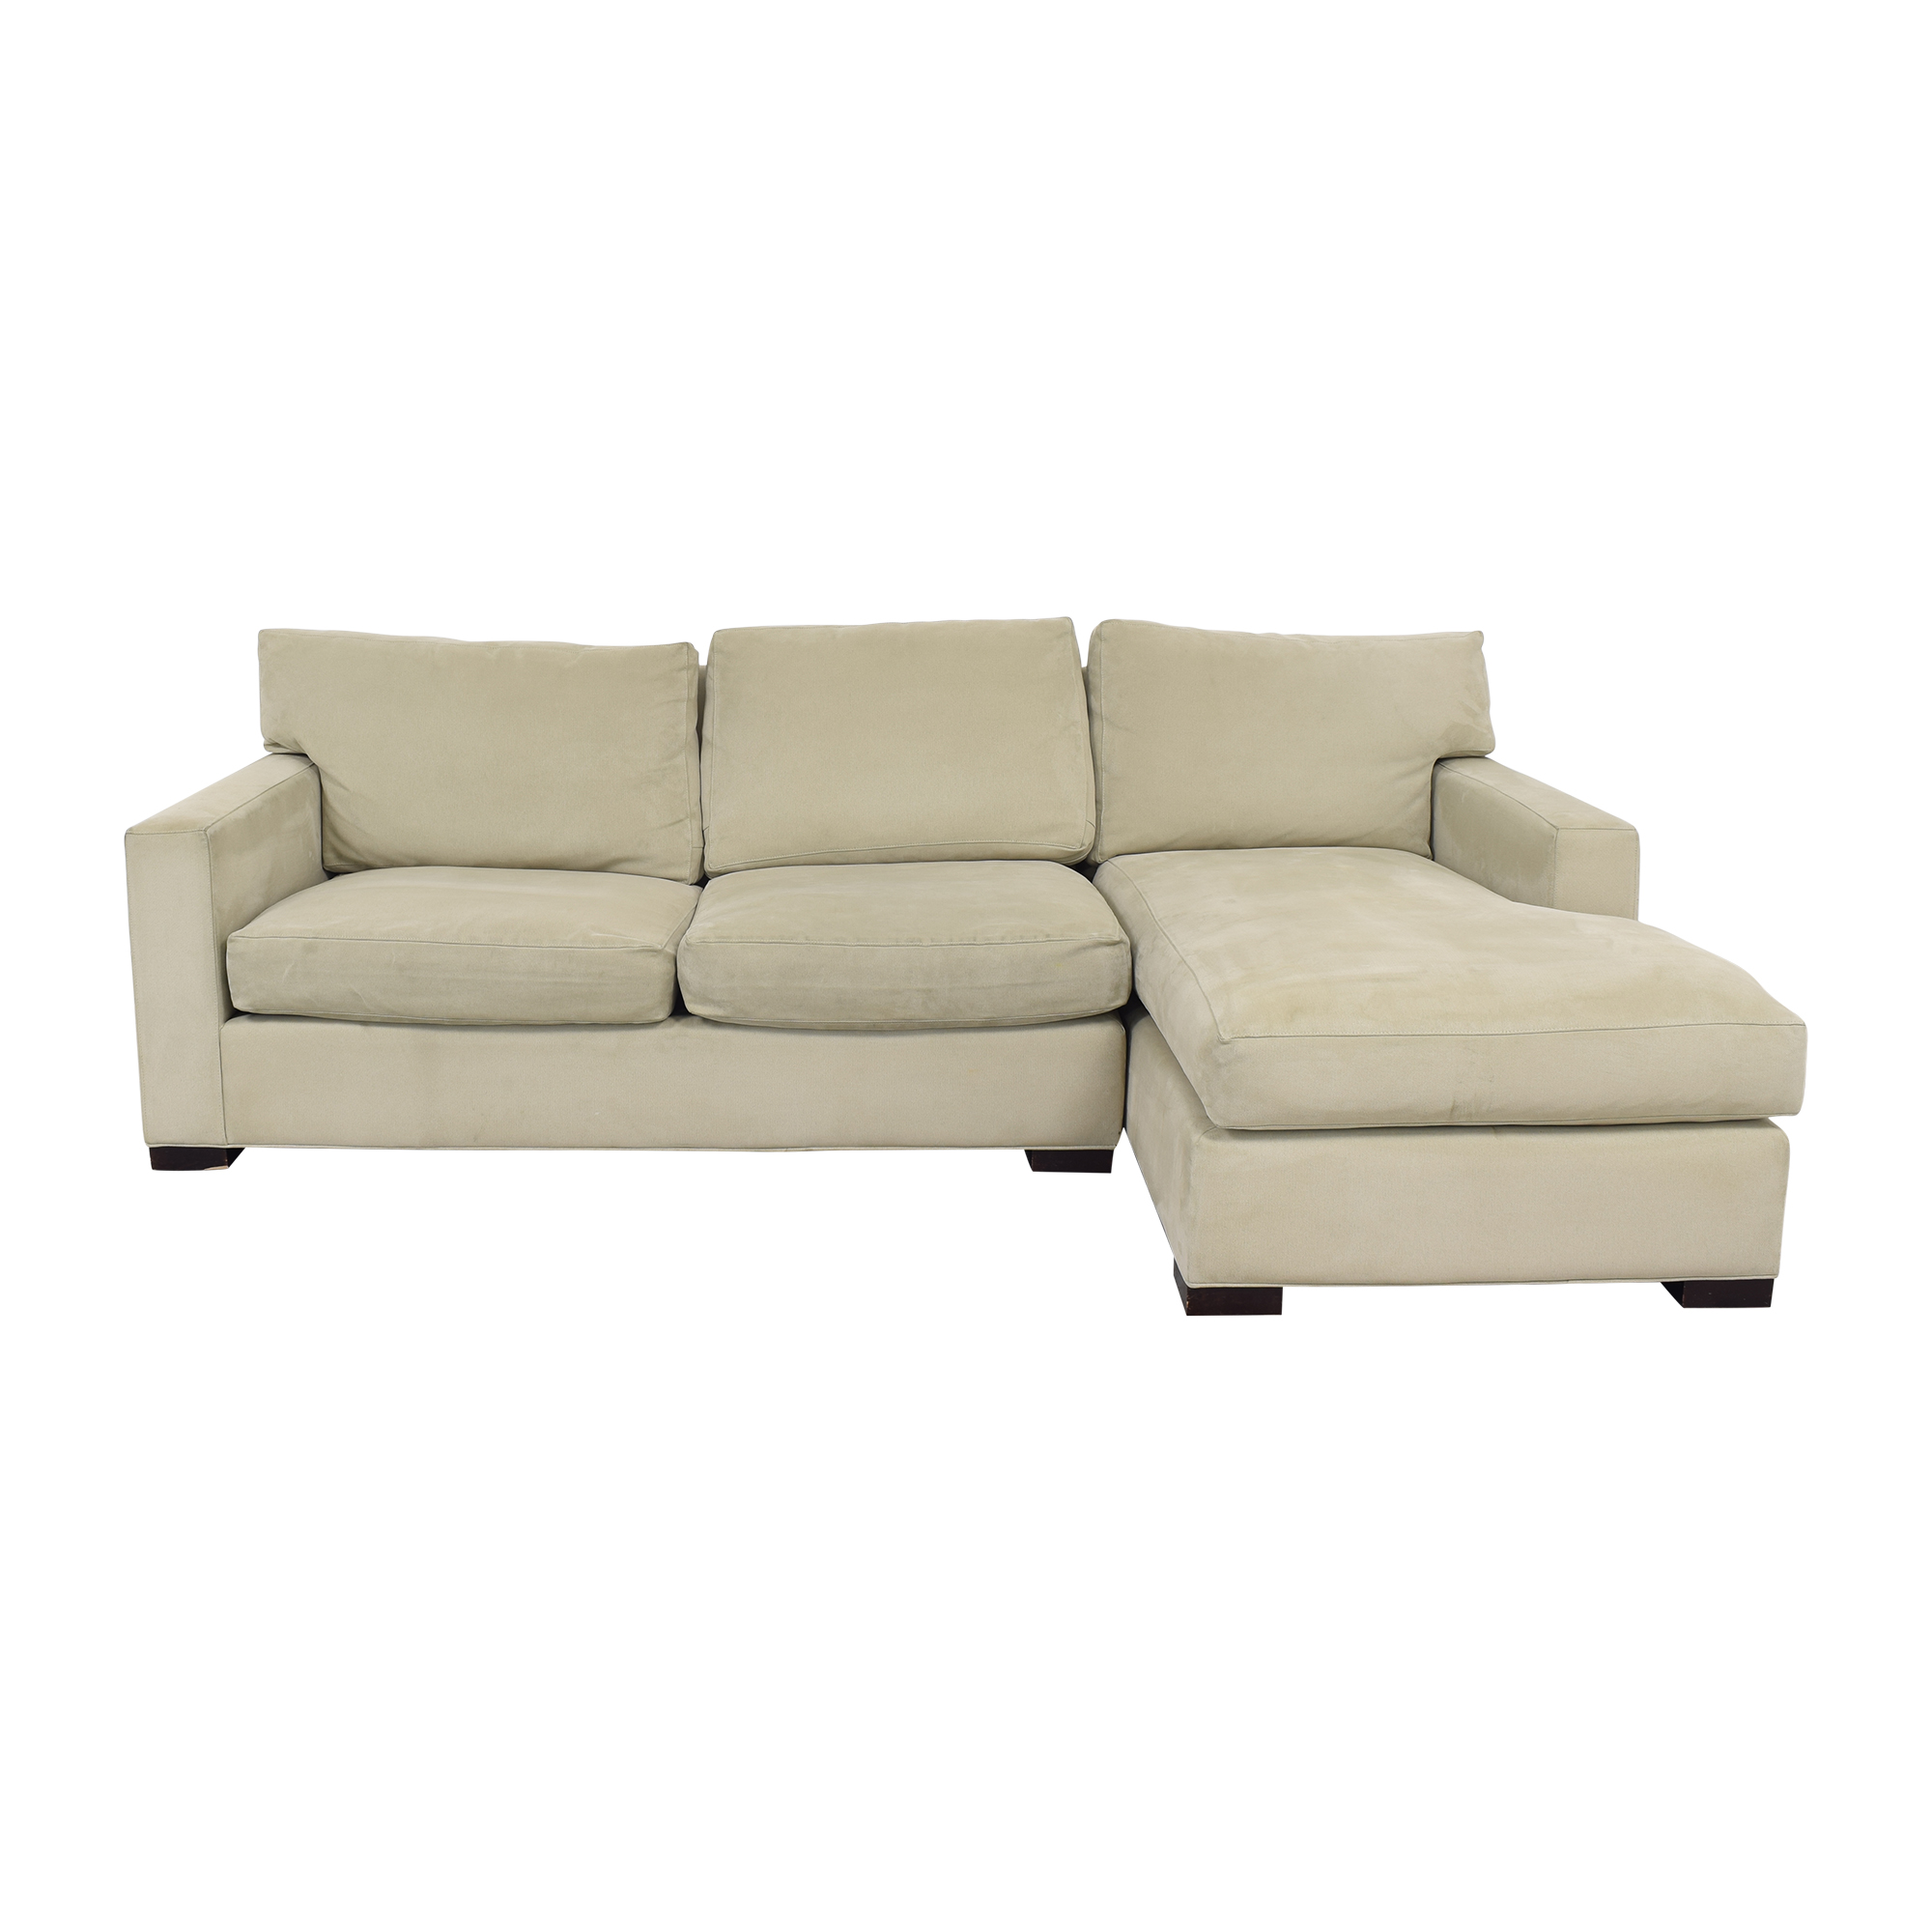 buy Crate & Barrel Axis II Sectional Sofa Crate & Barrel Sofas